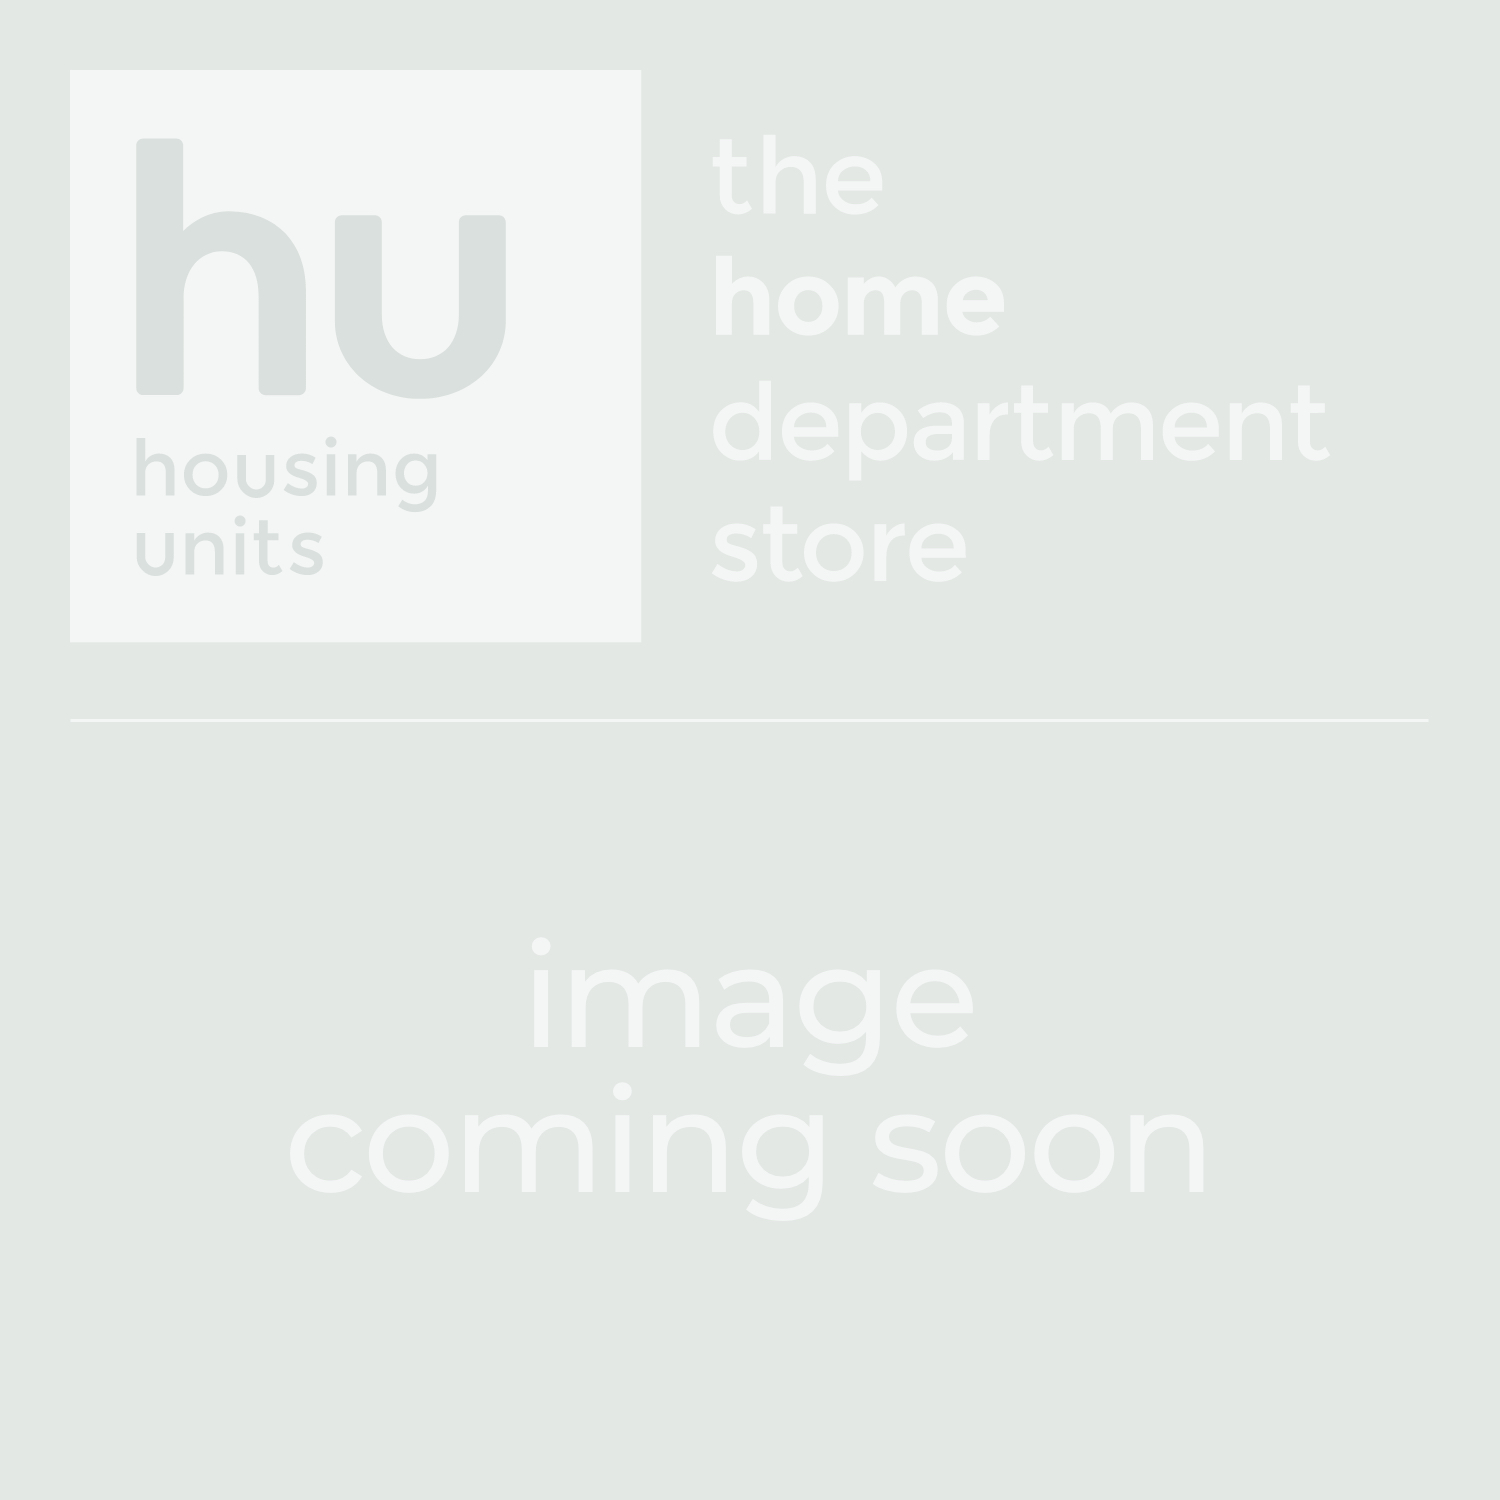 Stressless Consul Medium Office Chair in Batick Black & Black Wood - Lifestyle | Housing Units